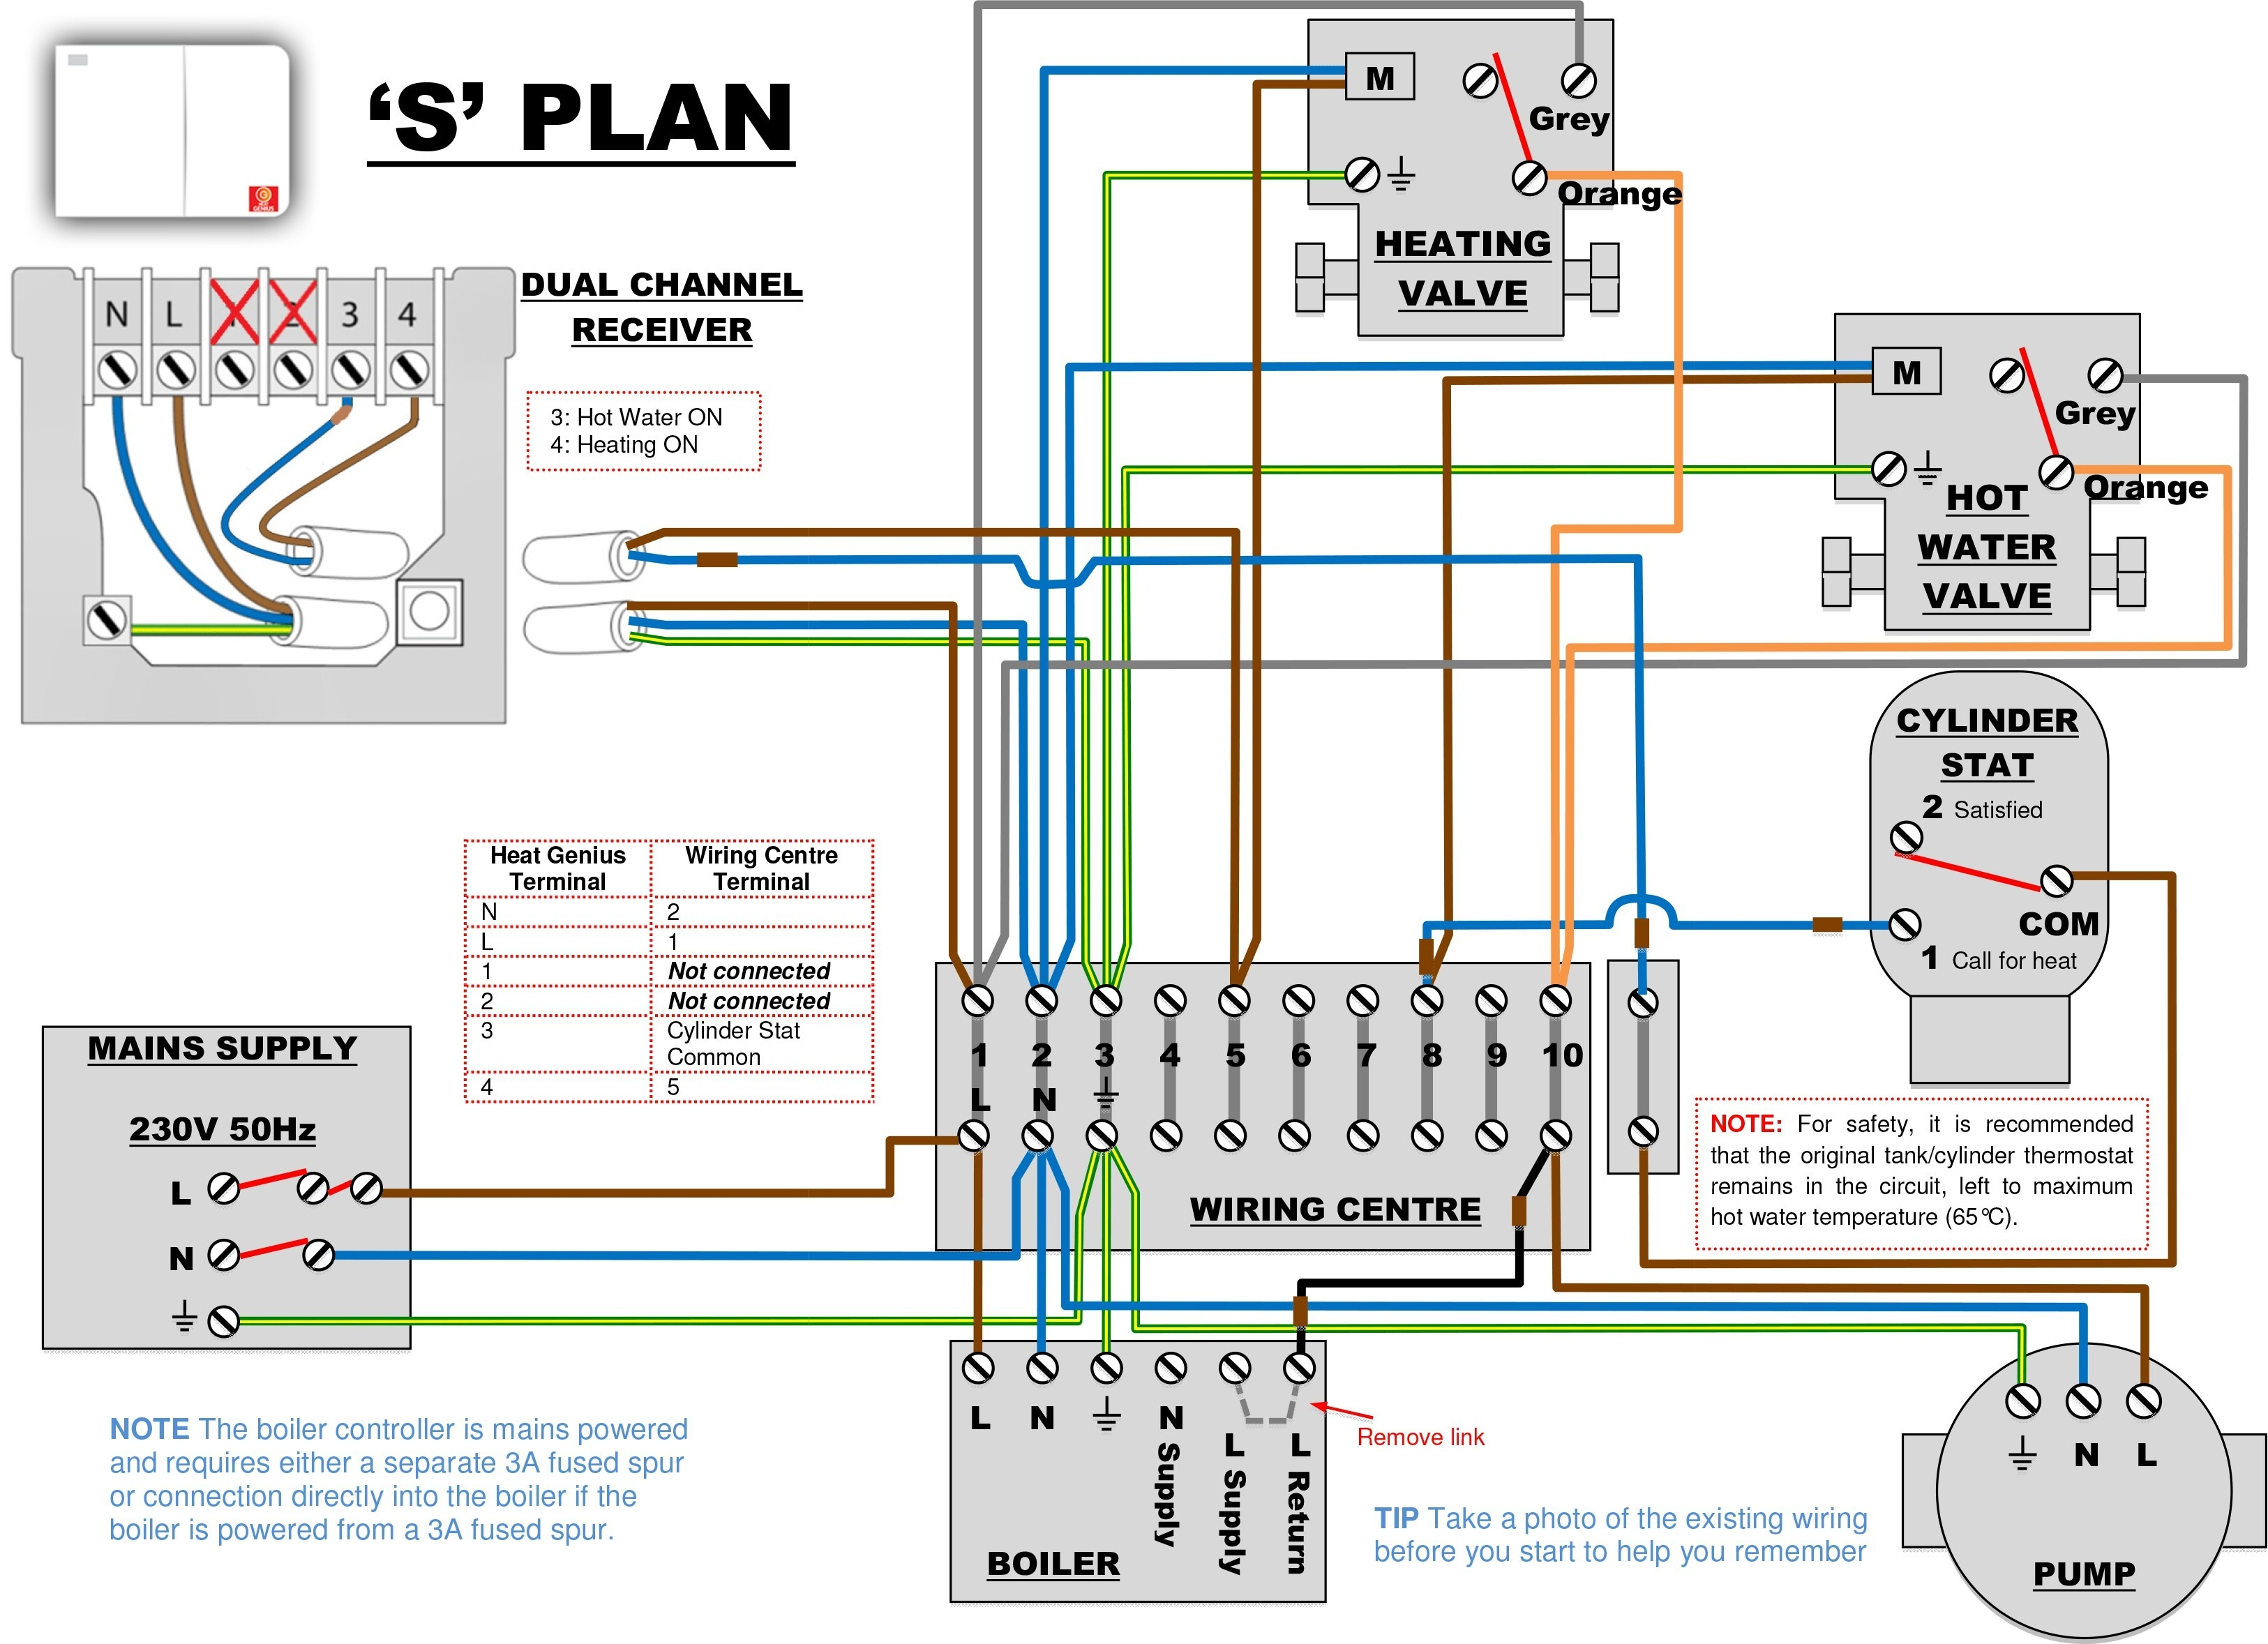 Nest Thermostat Wiring Diagram For Carrier Infinity - Wiring - Wiring Diagram For Nest Thermostat Split System